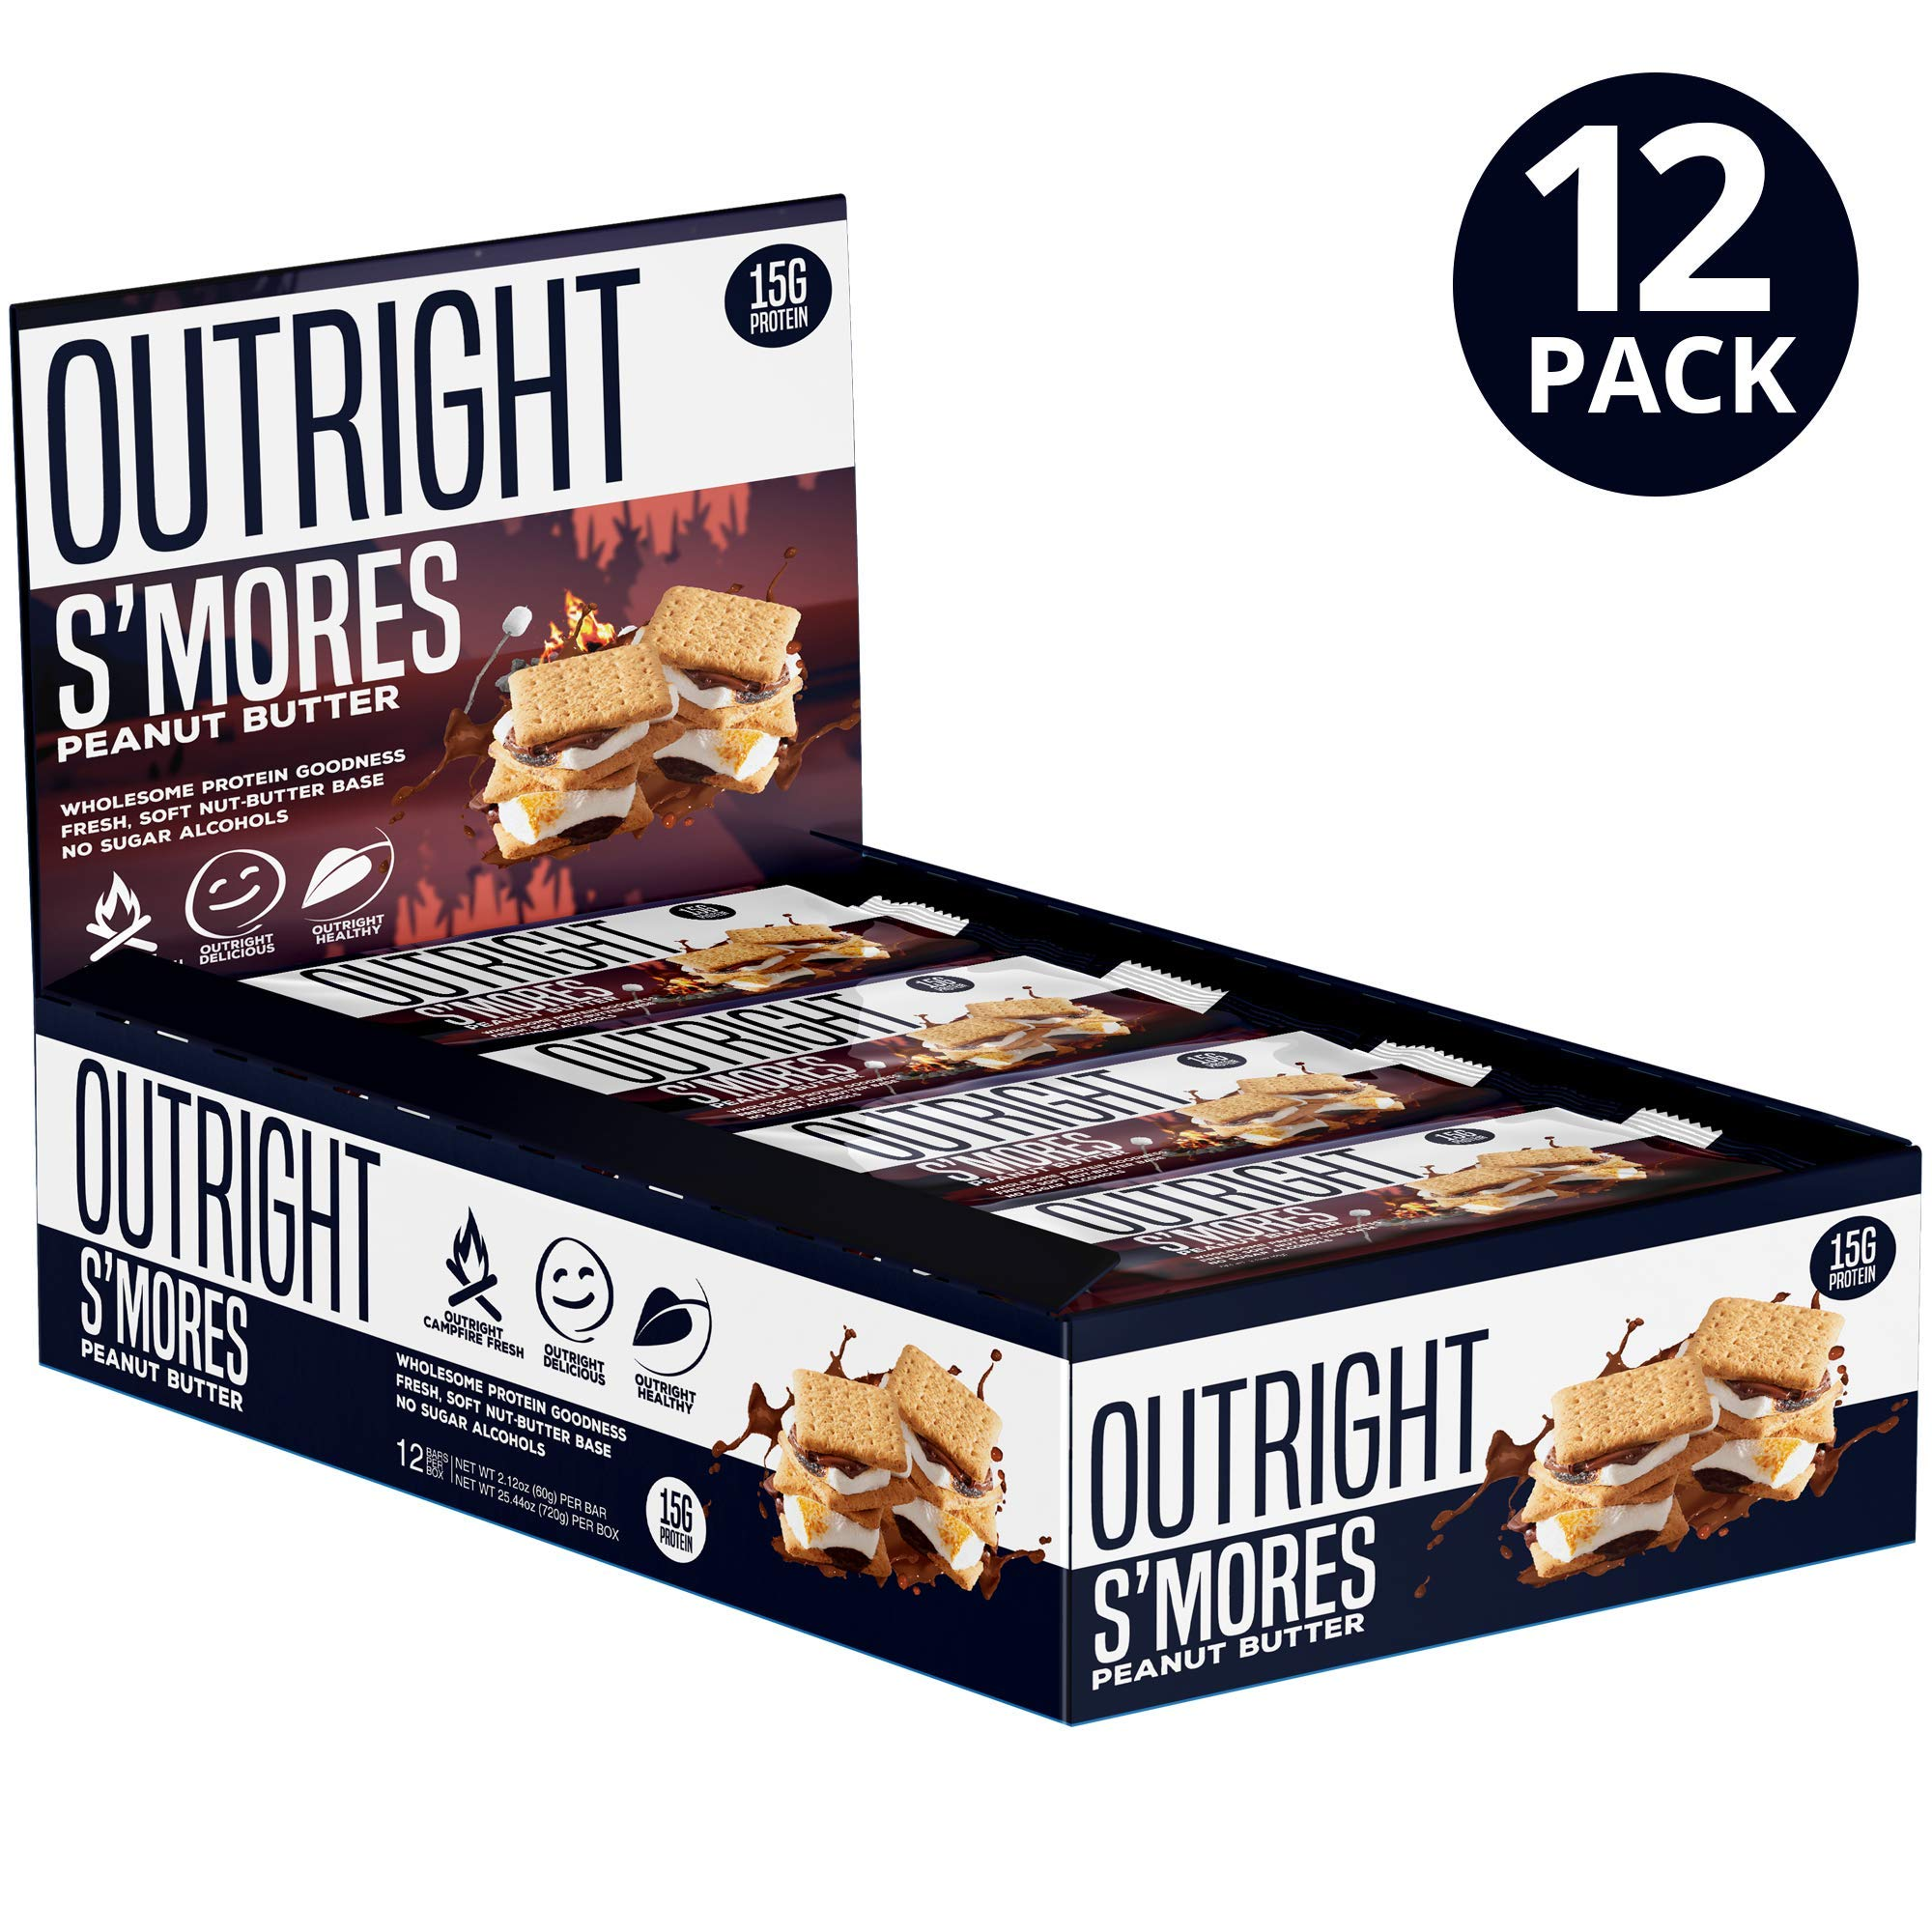 Outright Bar - Whole Food Protein Bar - 12 Pack - MTS Nutrition (S'Mores Peanut Butter) *Not Gluten Free* by MTS Nutrition